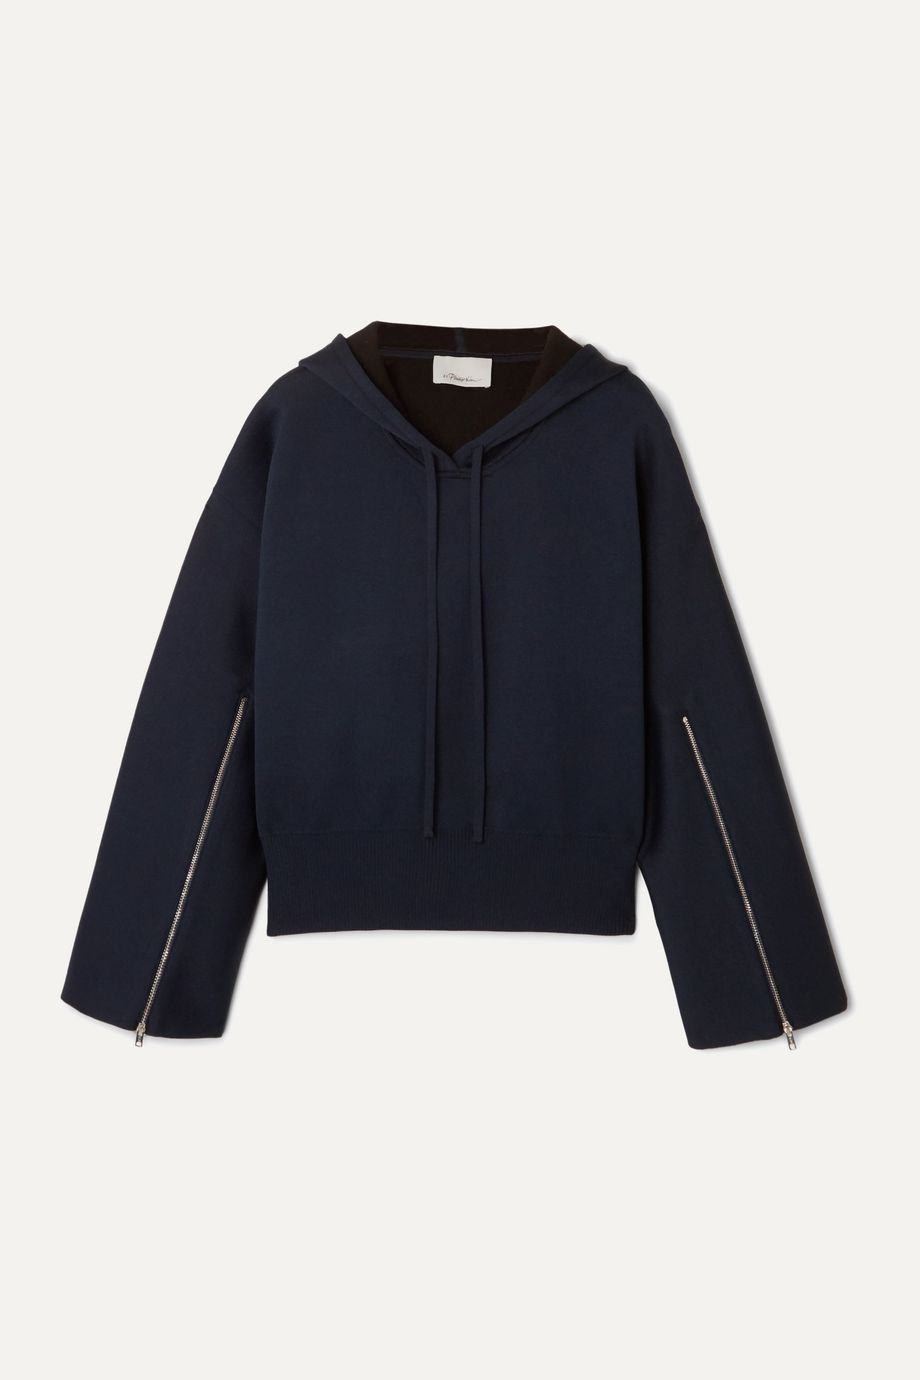 3.1 Phillip Lim Zip-detailed wool-blend hoodie